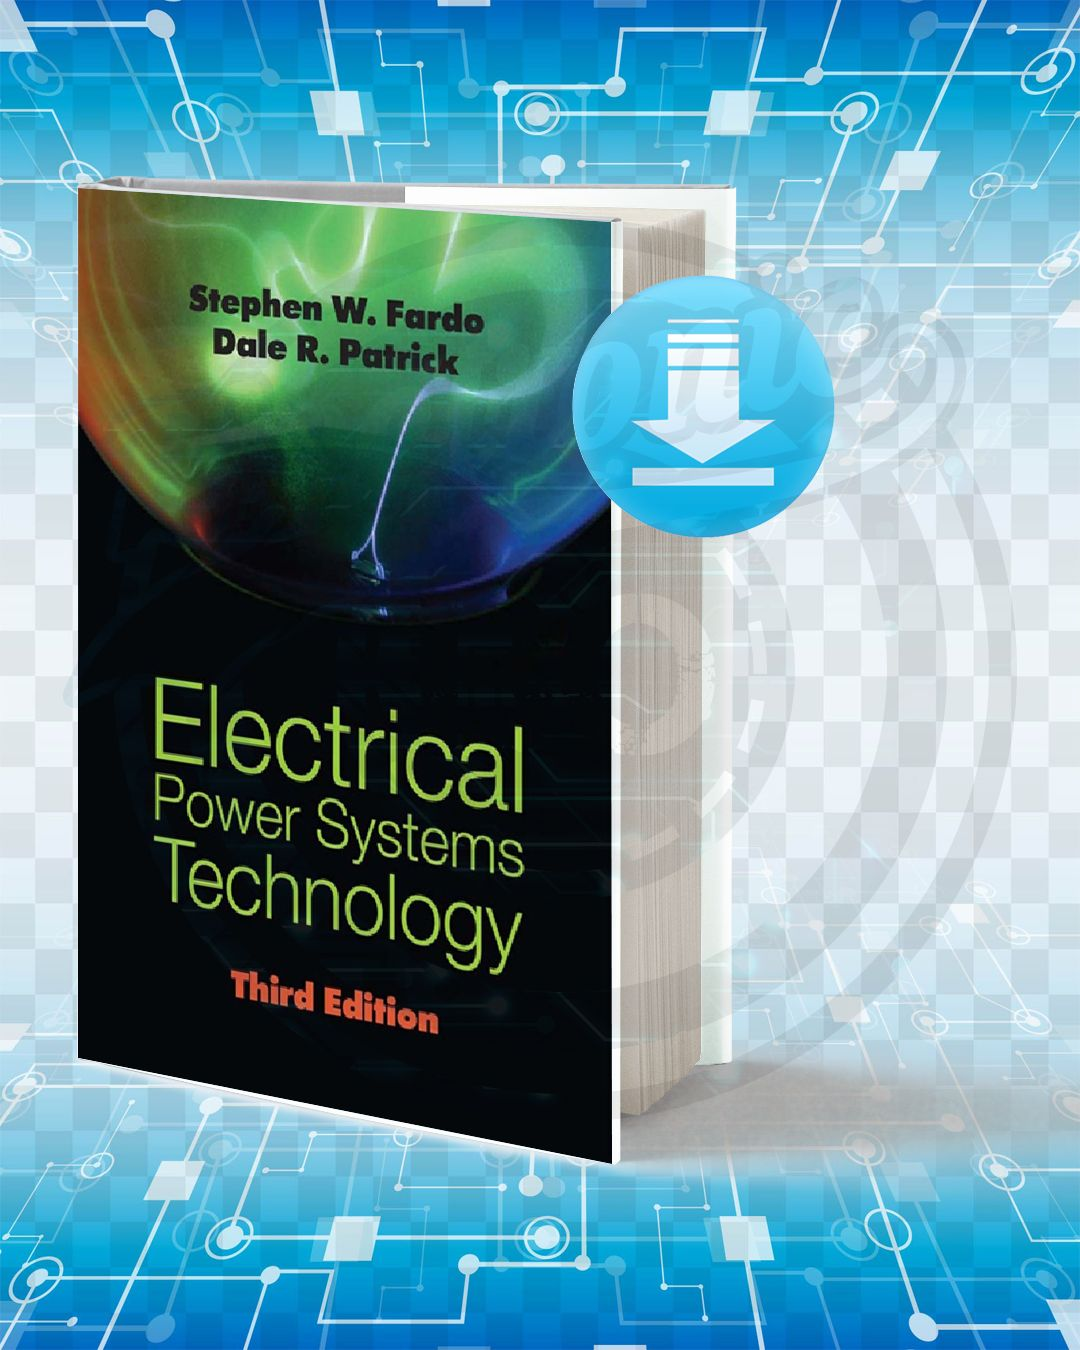 Download Electrical Power Systems Technology Electricity Electrical Engineering Books Technology